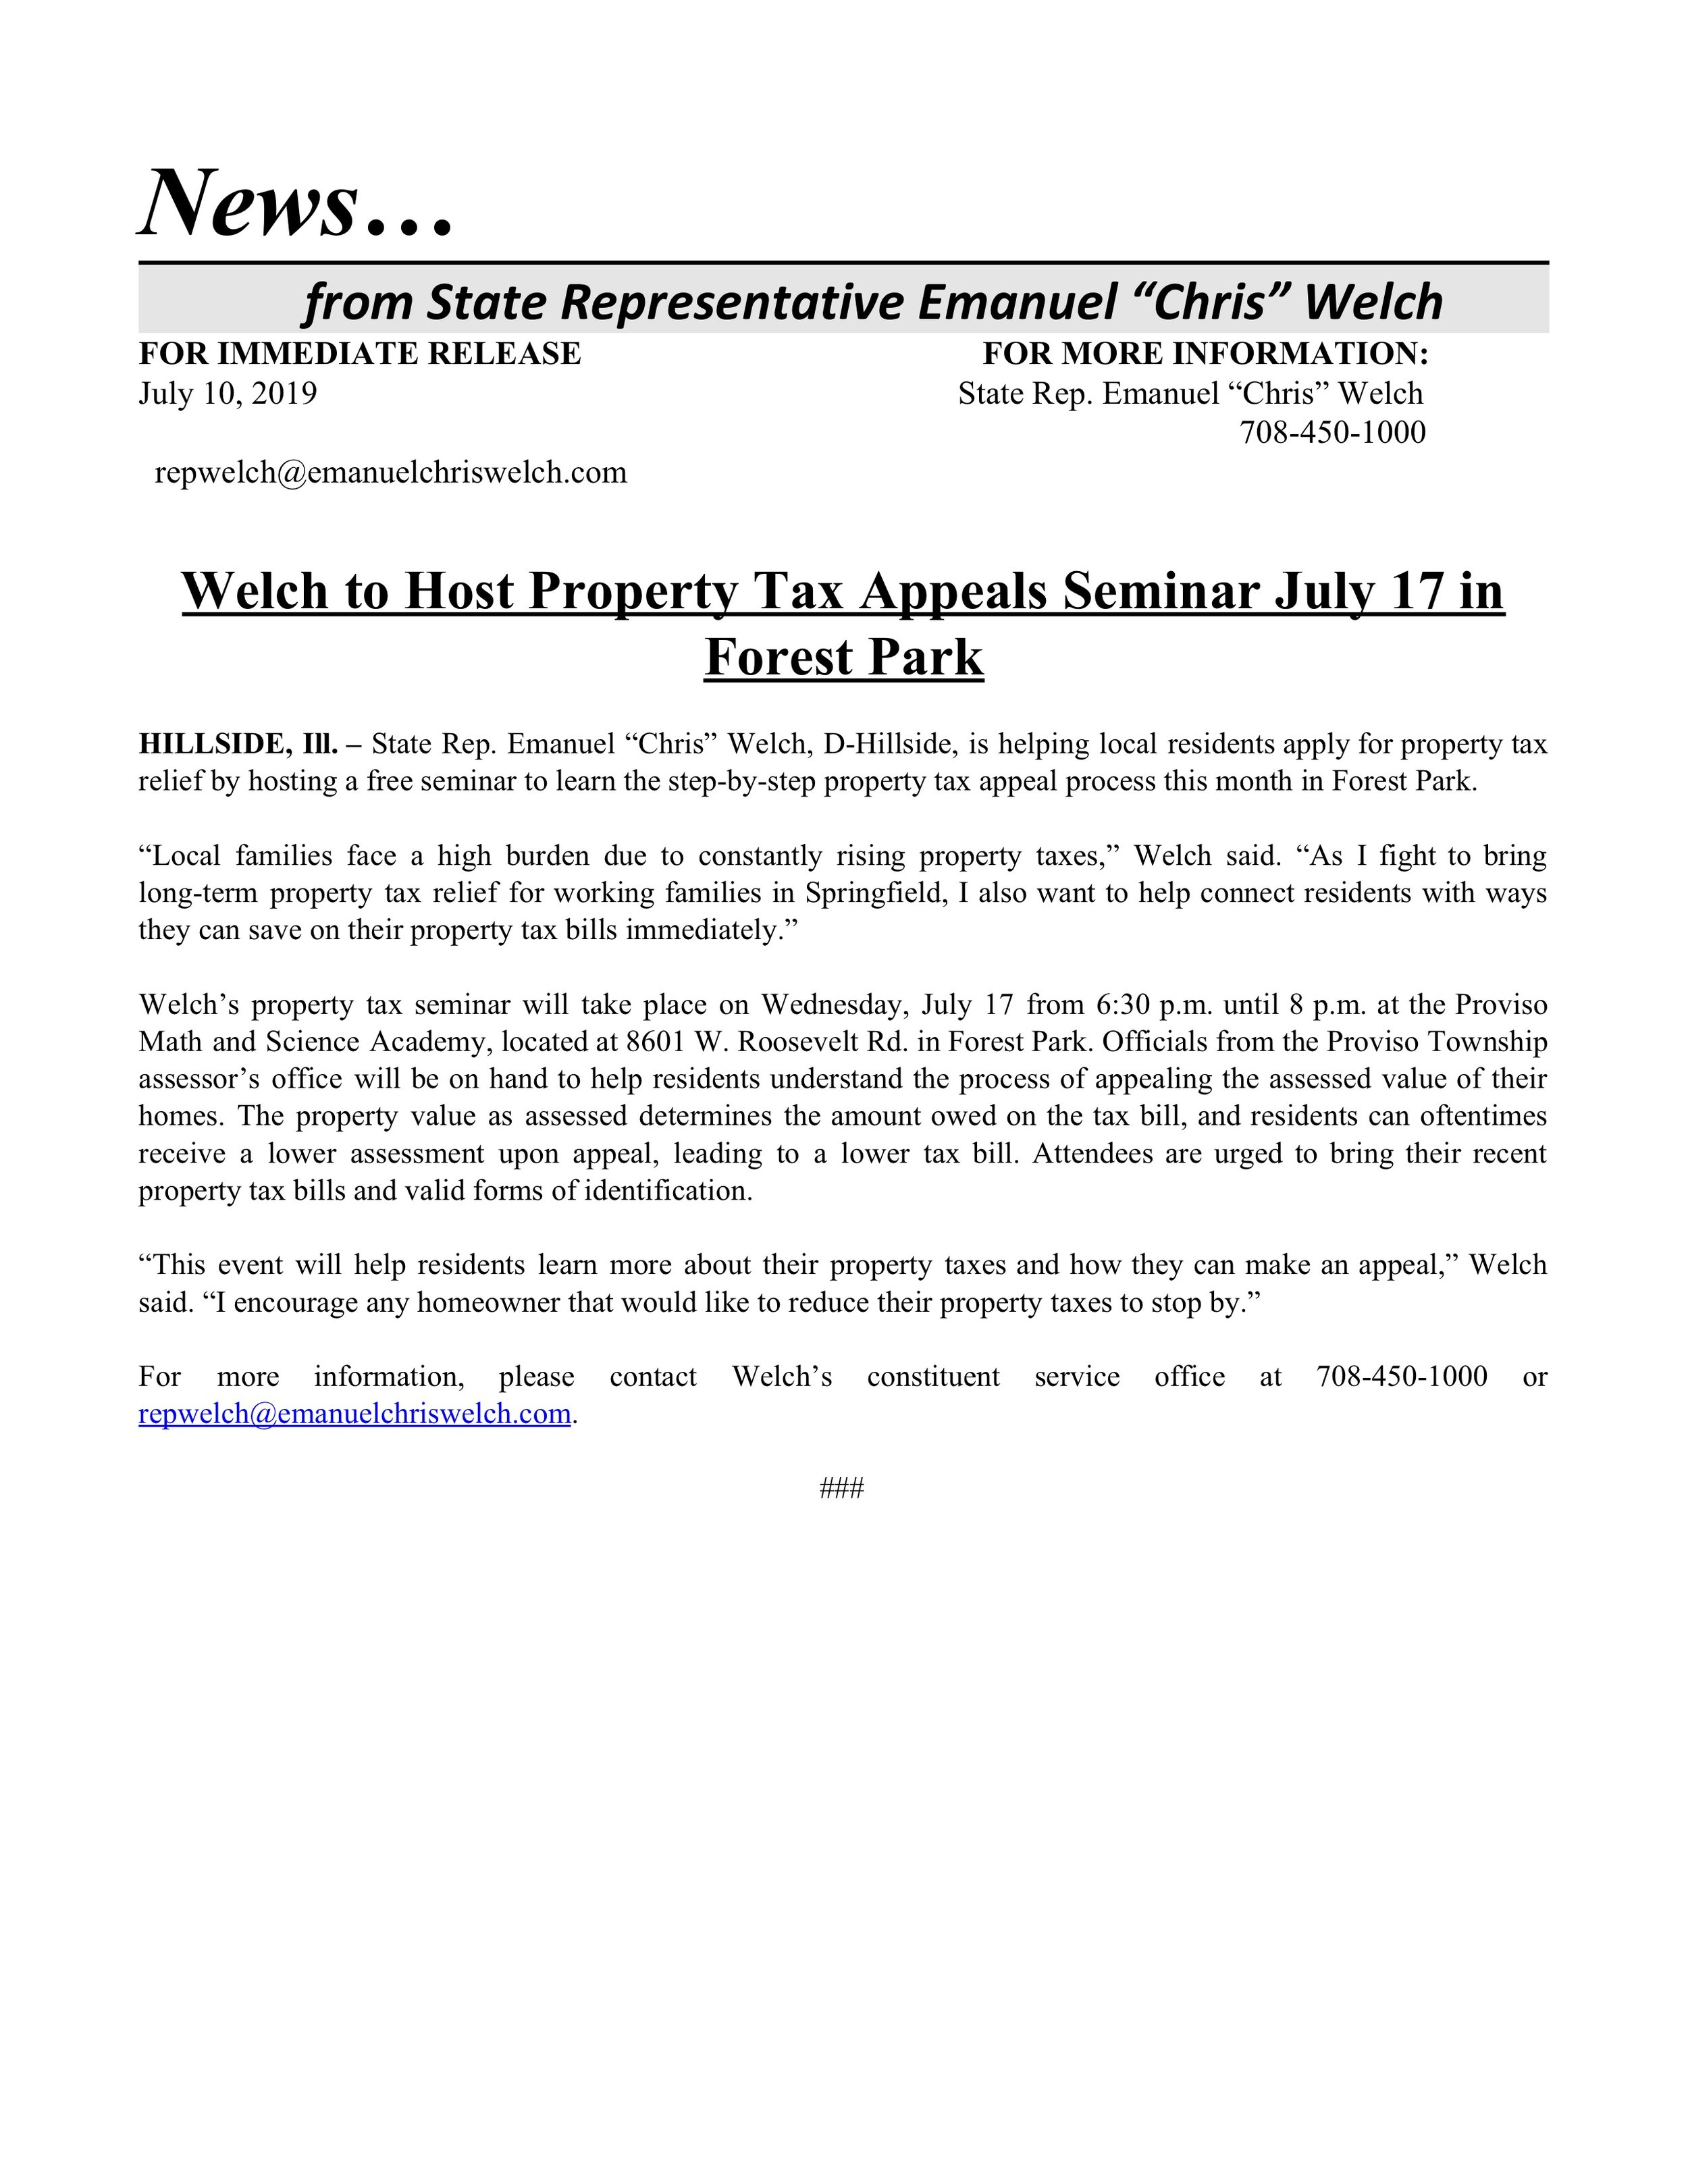 Welch to Host Property Tax Appeals Seminar July 17 in Forest Park  (July 10, 2019)